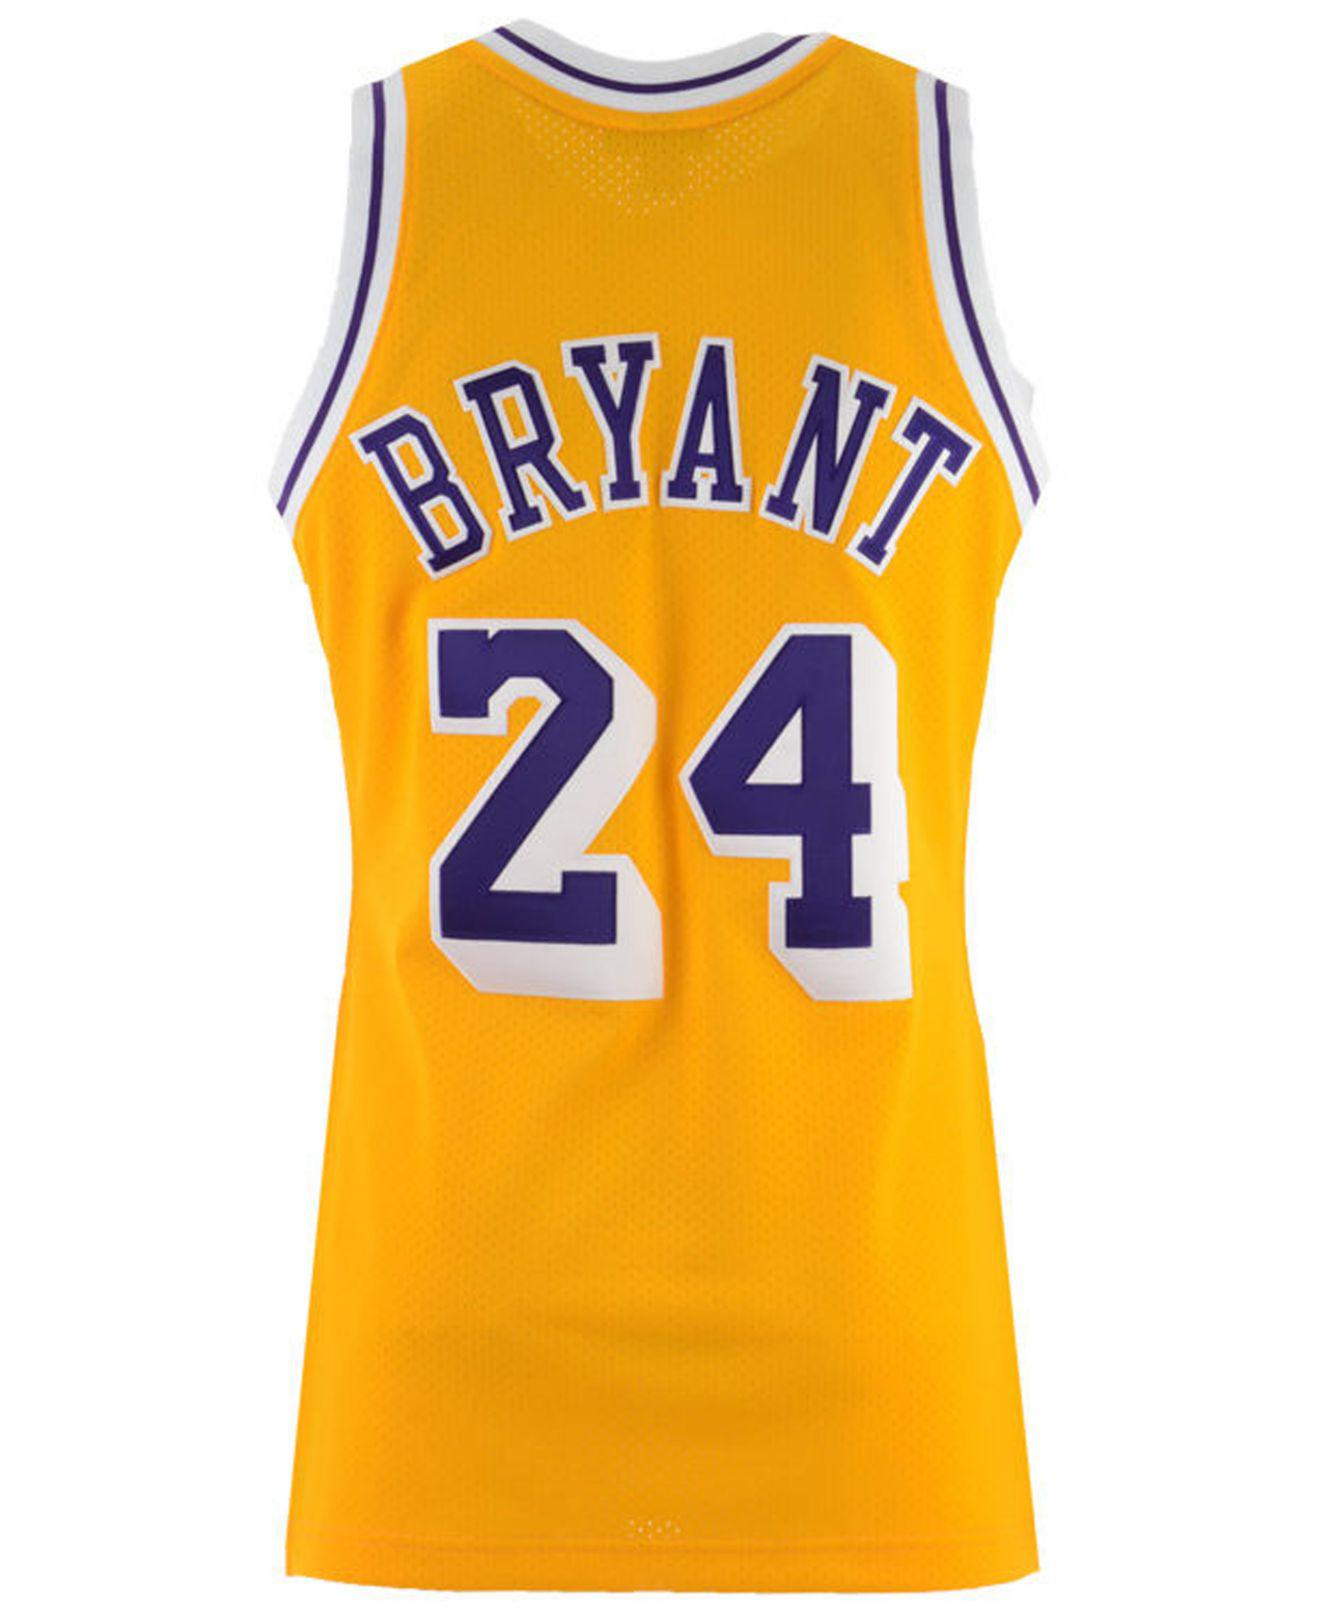 a064a3f1b Mitchell   Ness. Men s Metallic Kobe Bryant Los Angeles Lakers Authentic  Jersey